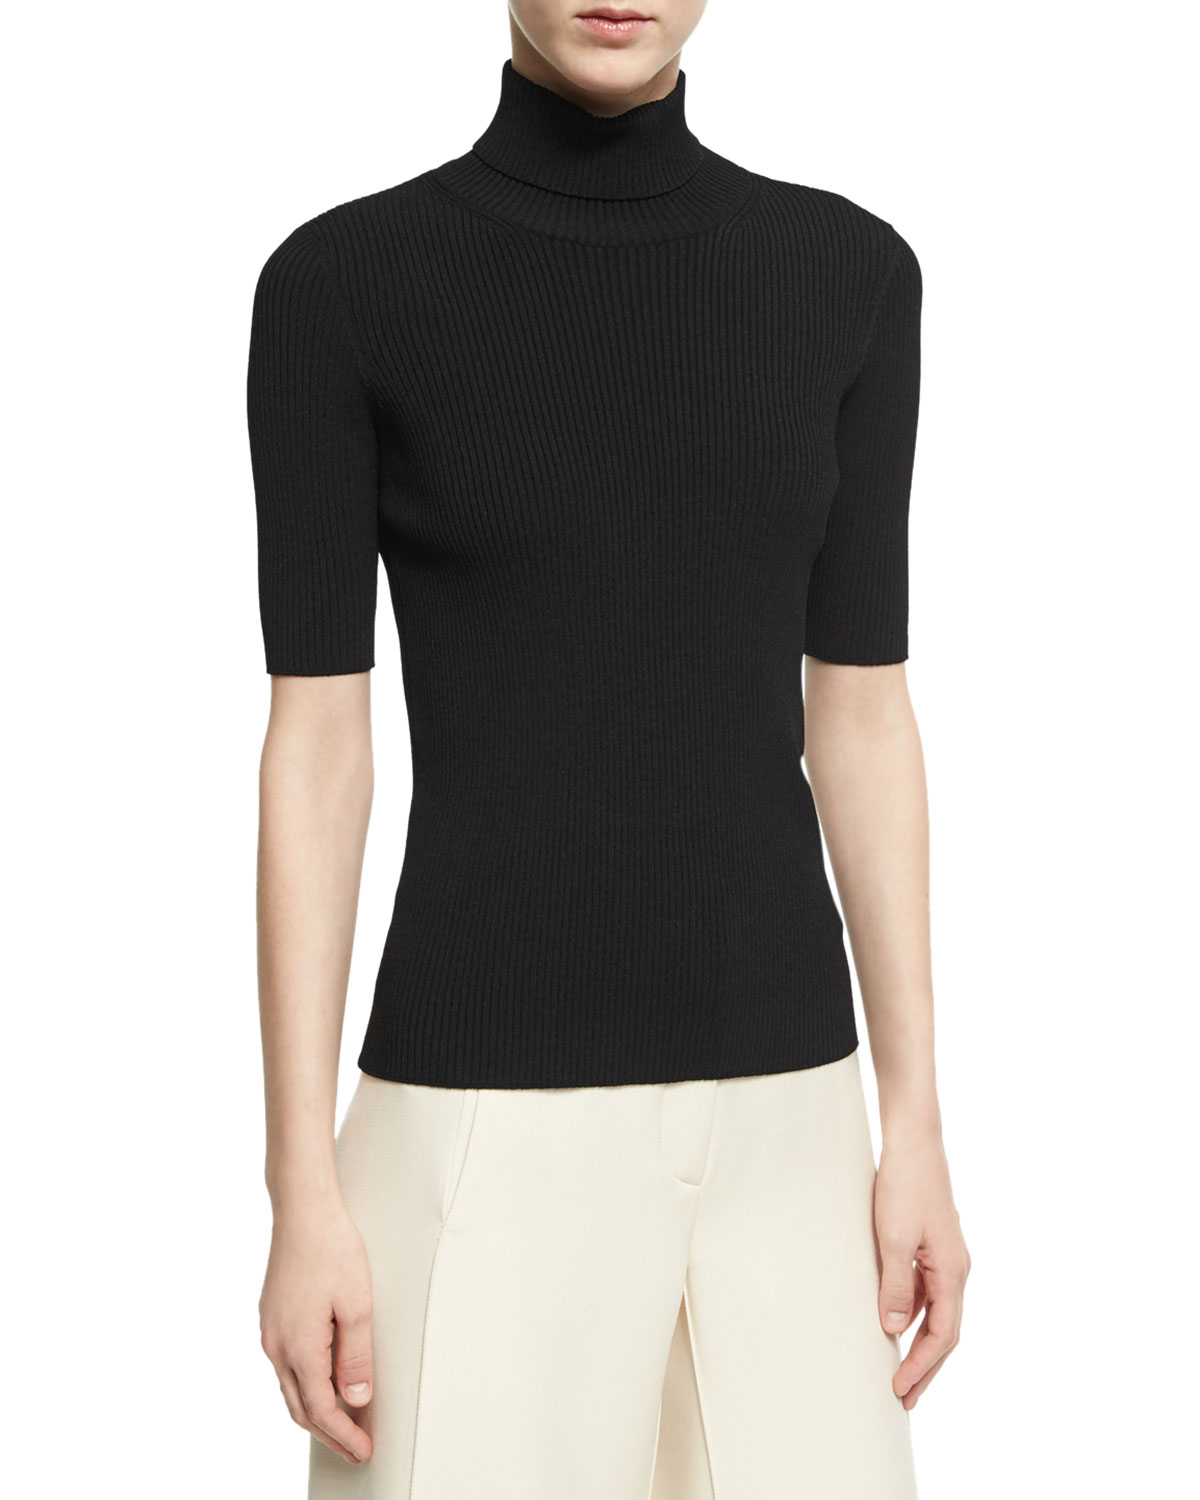 Ribbed Half-Sleeve Turtleneck Top